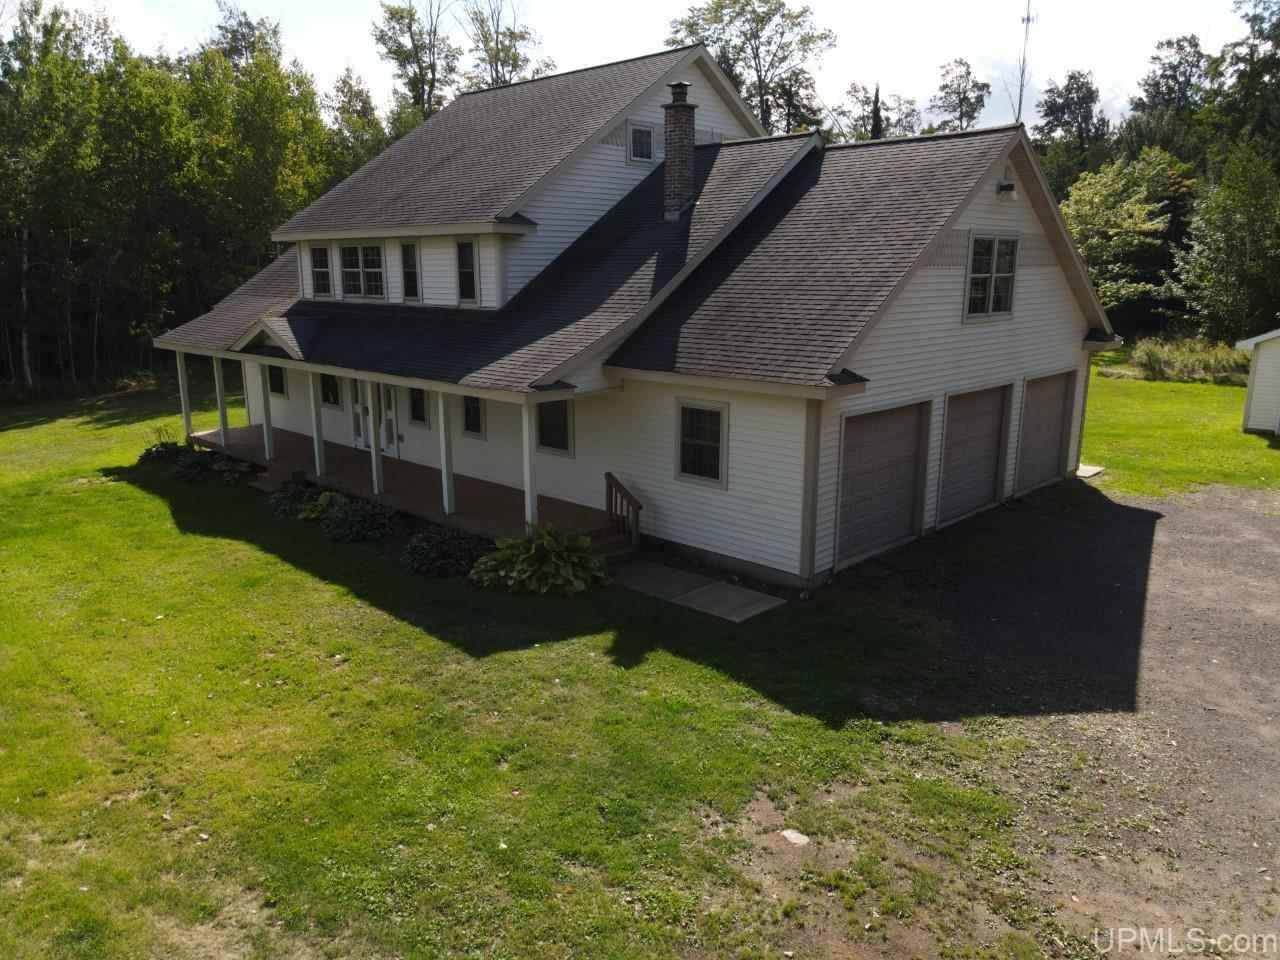 40947 N Entry Rd, Chassell, MI 49916